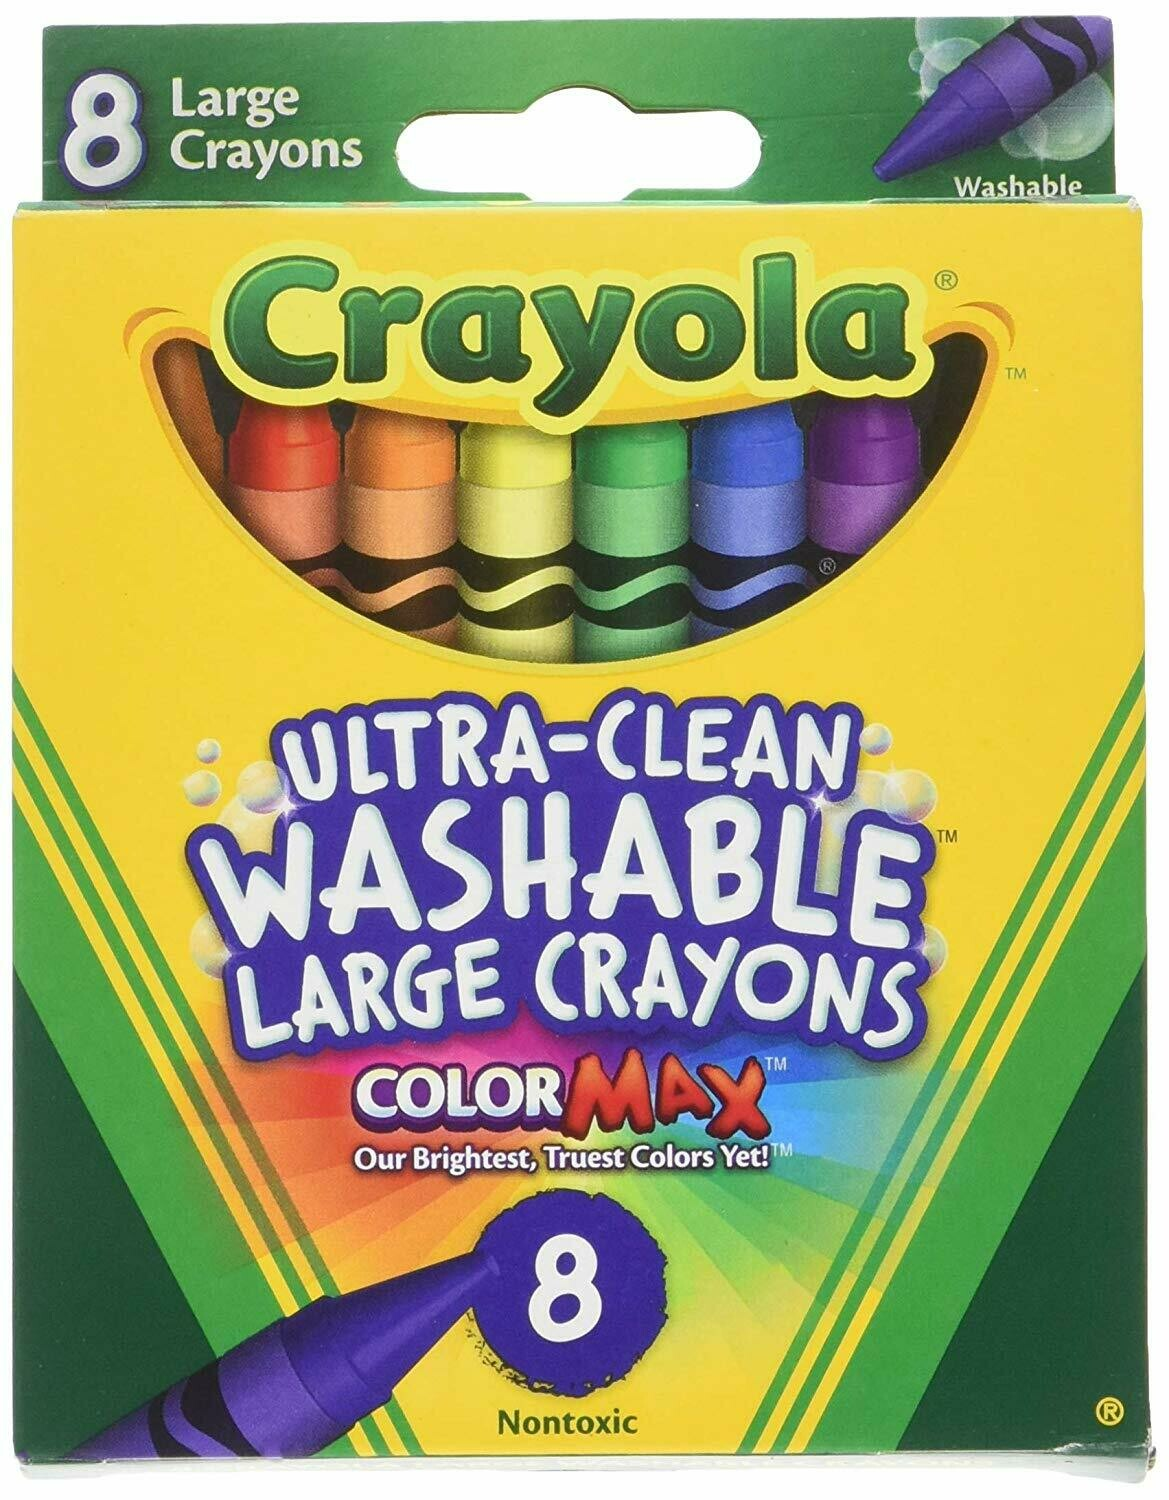 Crayola / Washable Crayons 8 Colors, Large